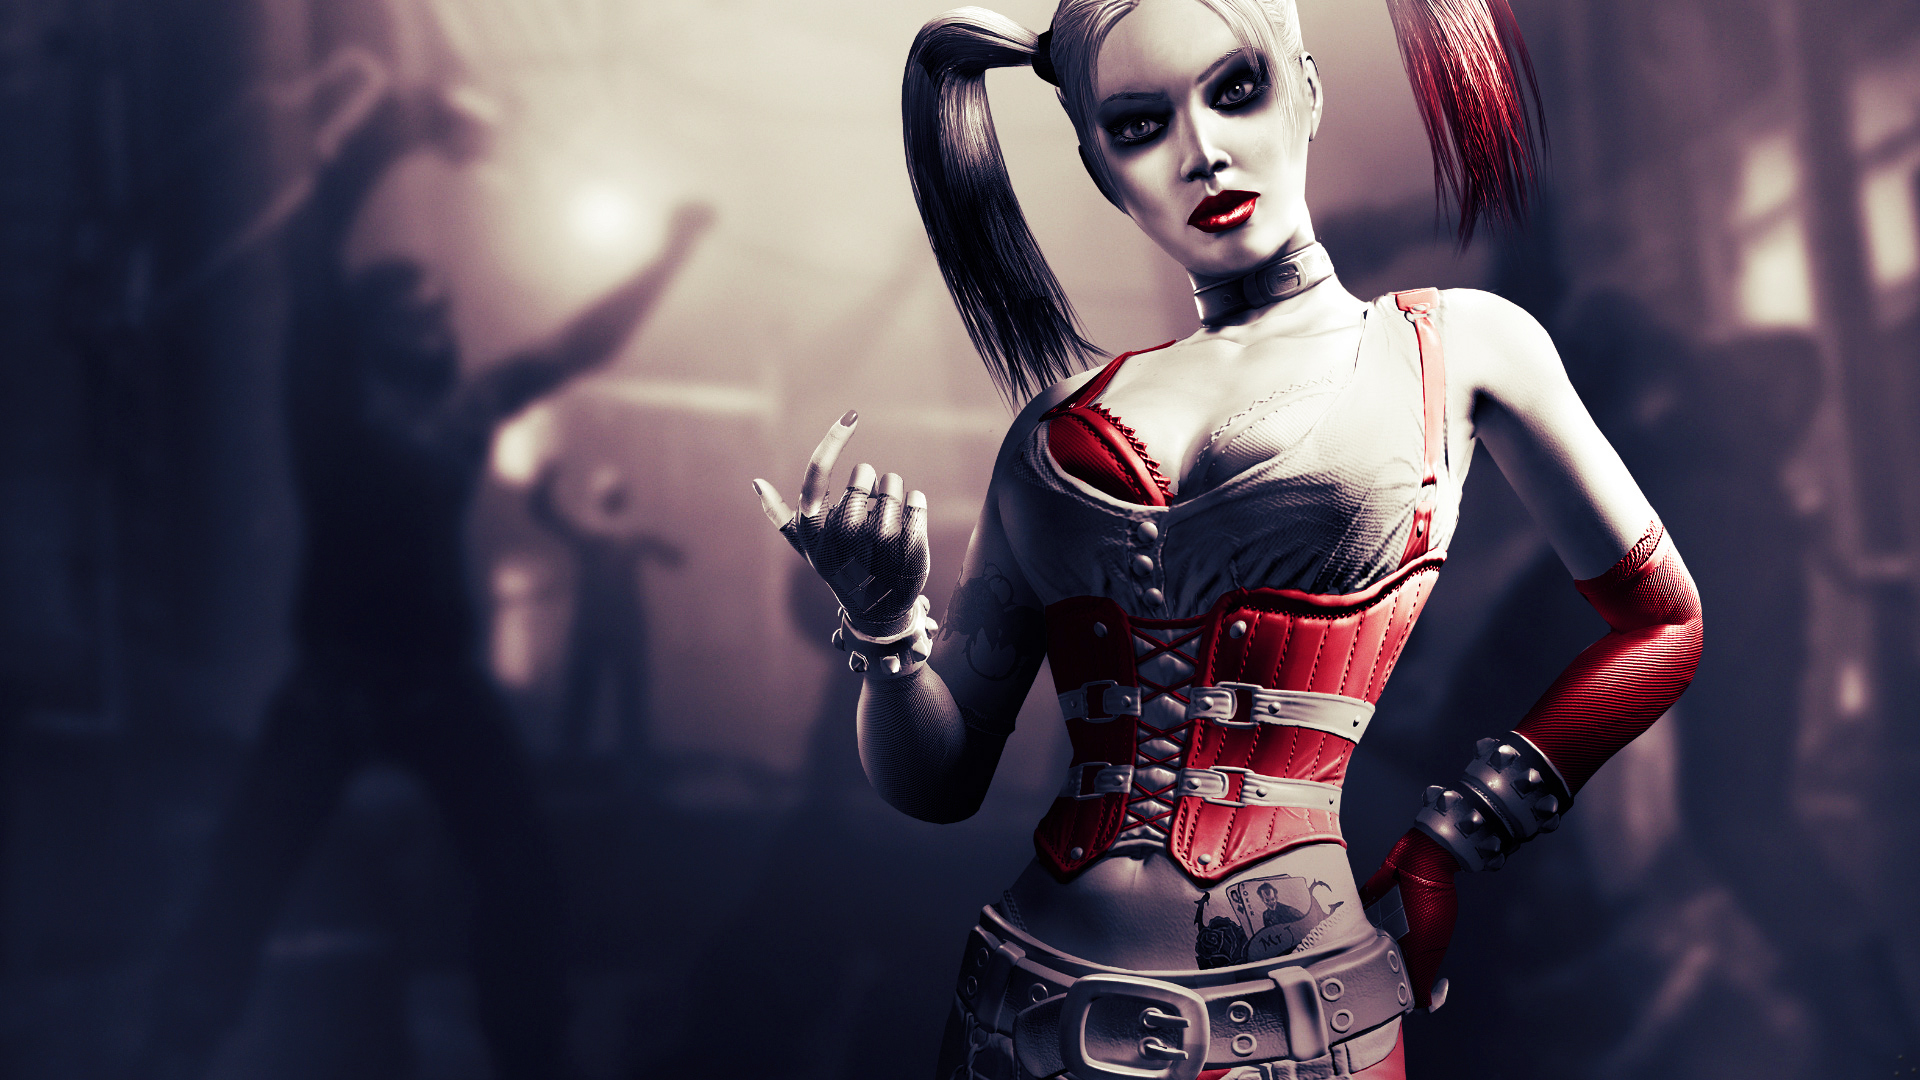 games drawing art harley quinn Batman background